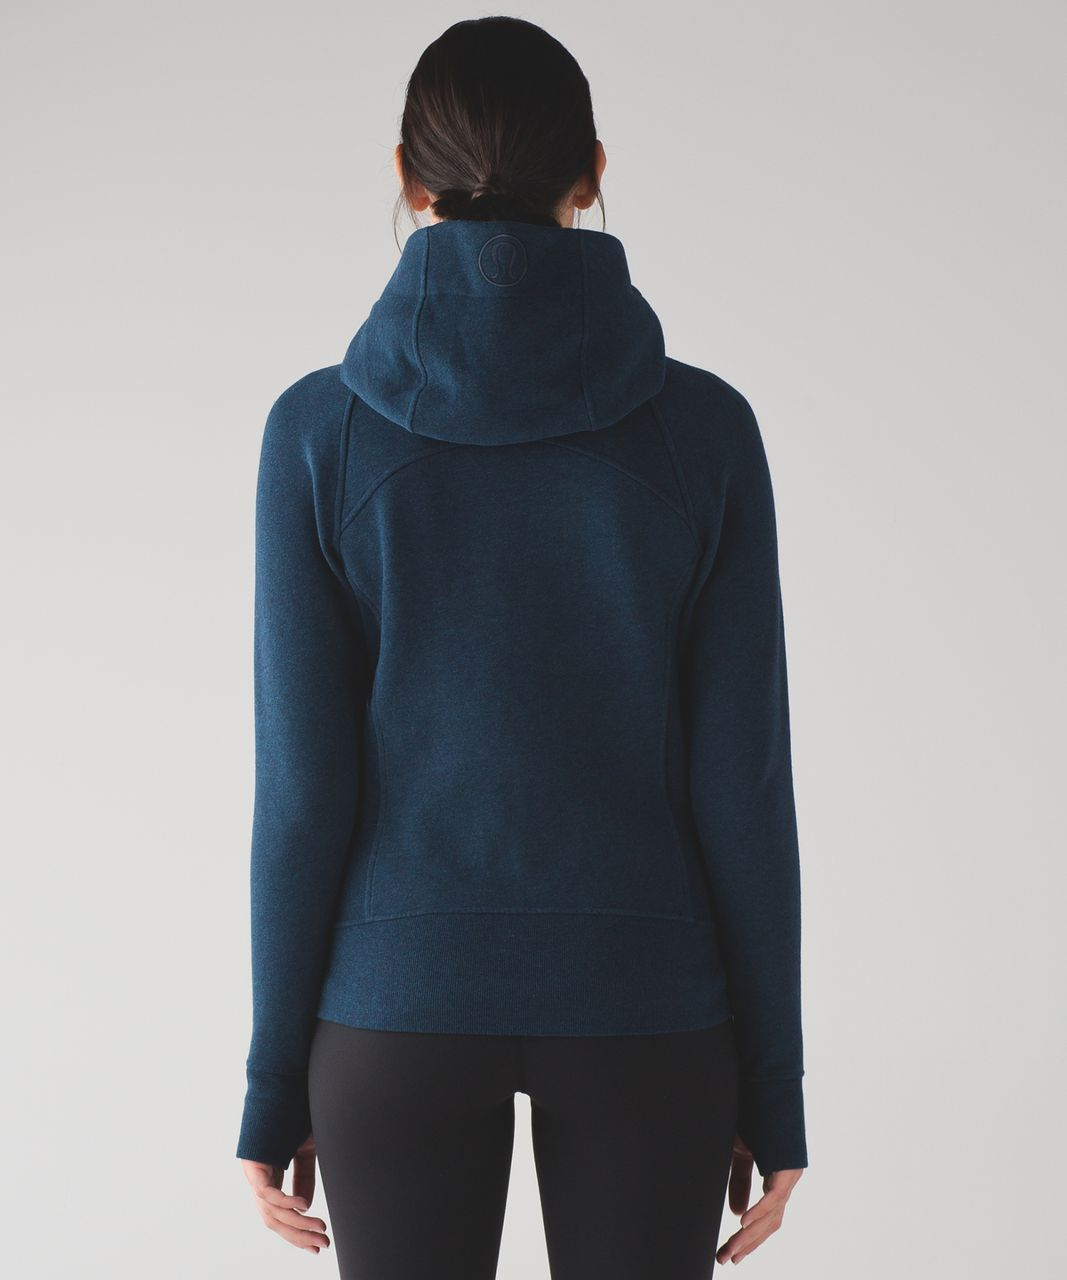 Lululemon Scuba Hoodie IV - Heathered Nocturnal Teal